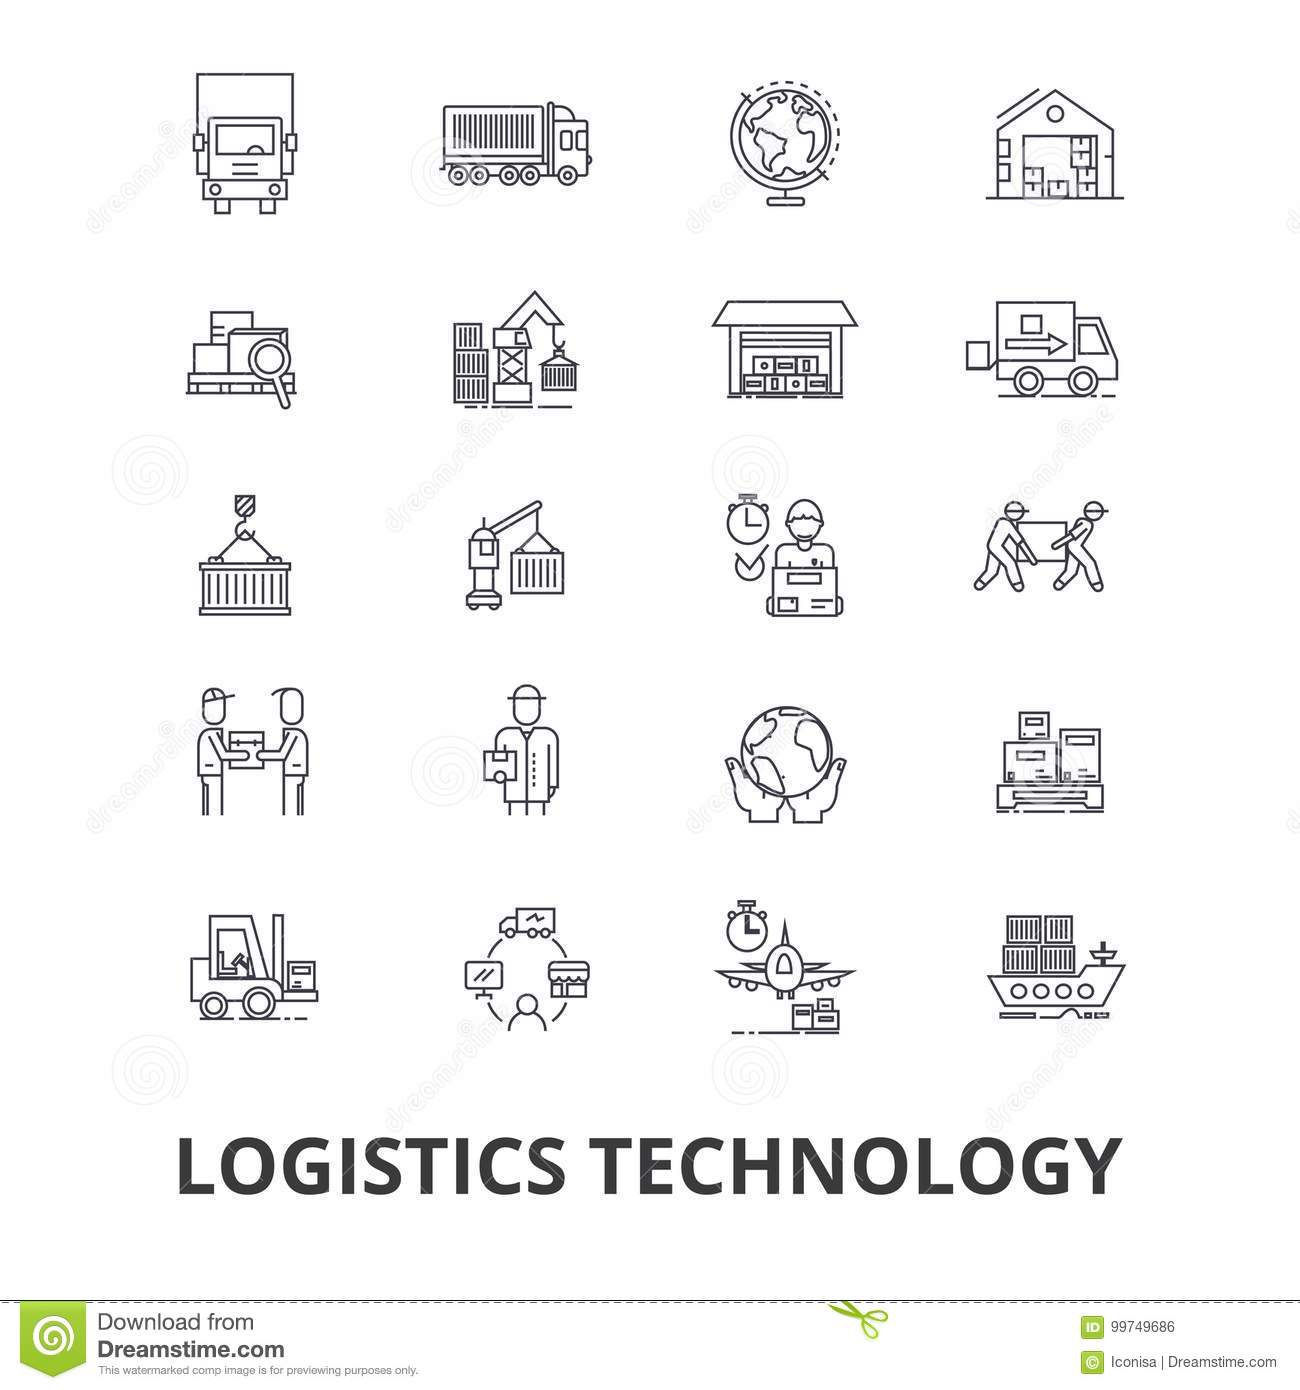 Logistics technology, transport, supply chain, delivery system, warehouse, cargo line icons. Editable strokes. Flat